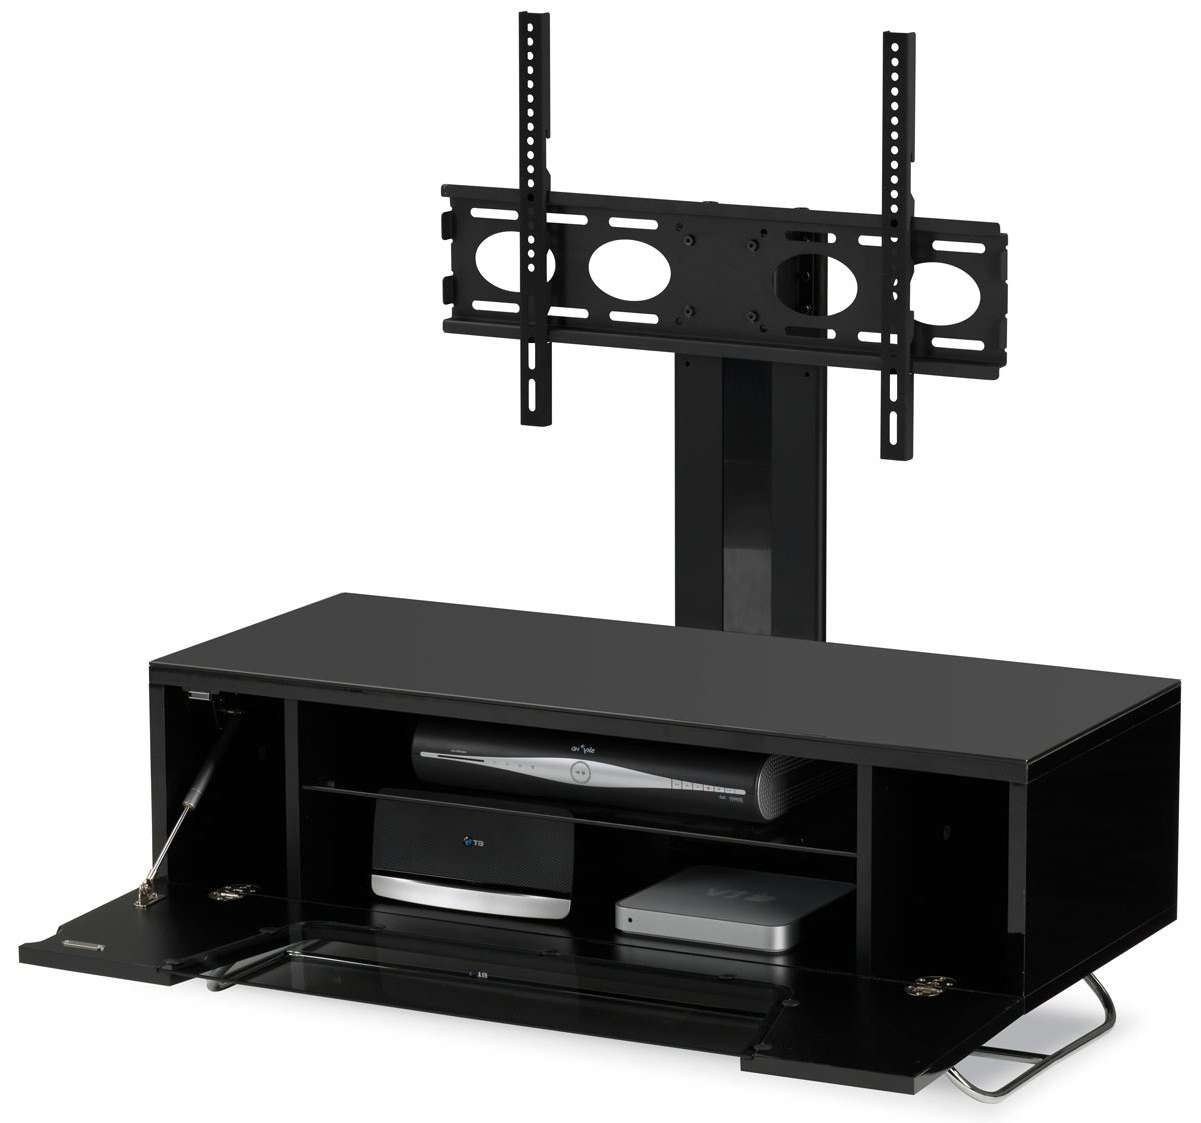 Alphason Chromium Black Cantilever Tv Stand With Regard To Cantilever Tv Stands (View 5 of 15)